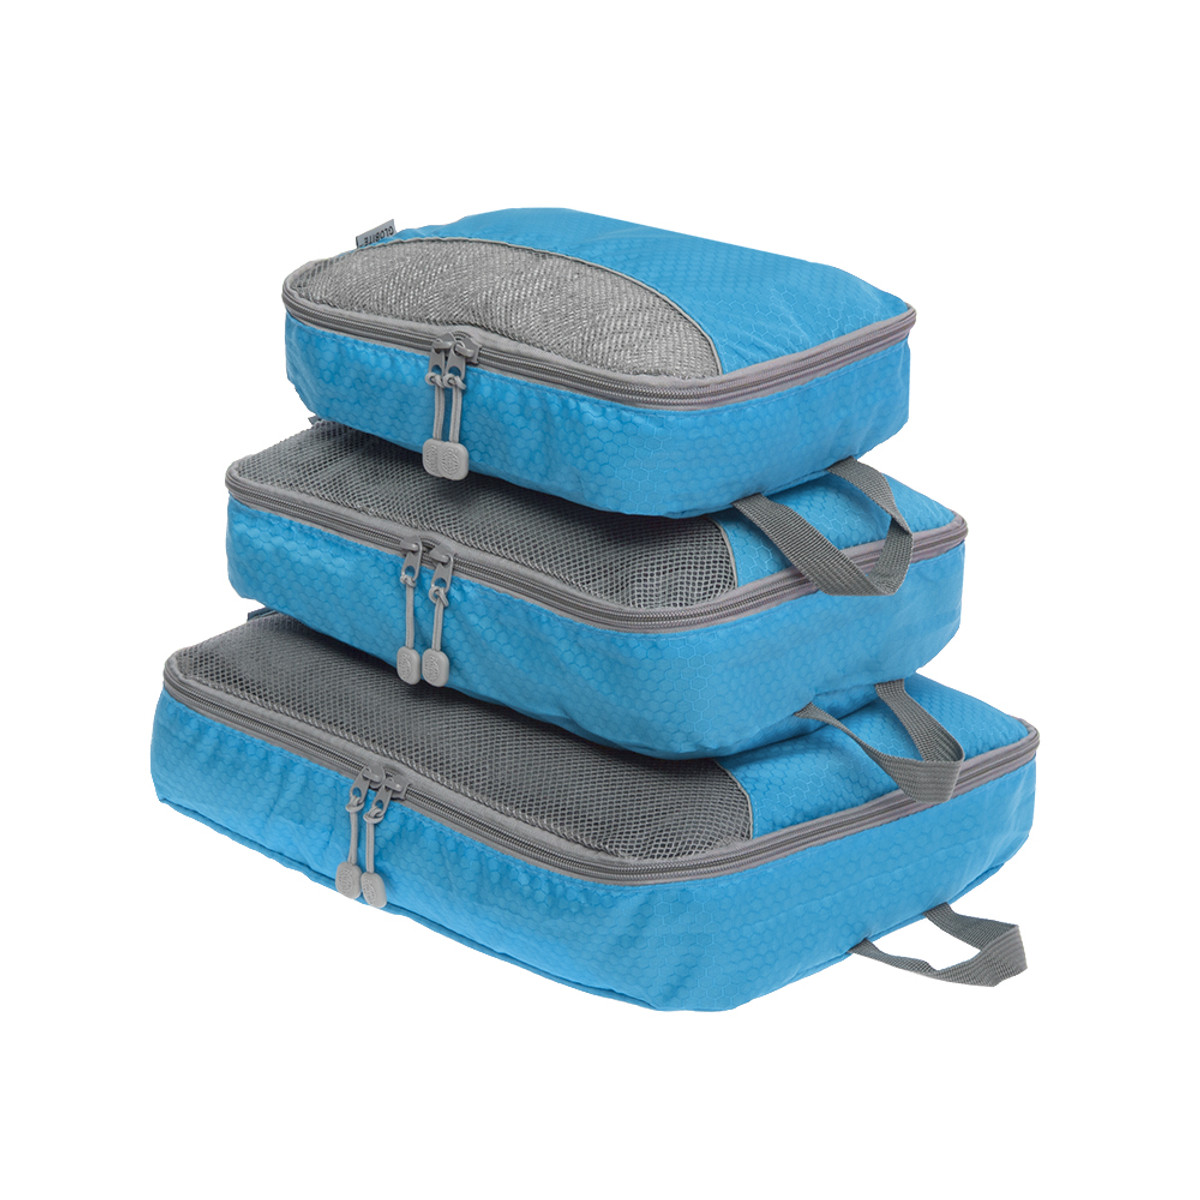 Globite packing cubes - blue